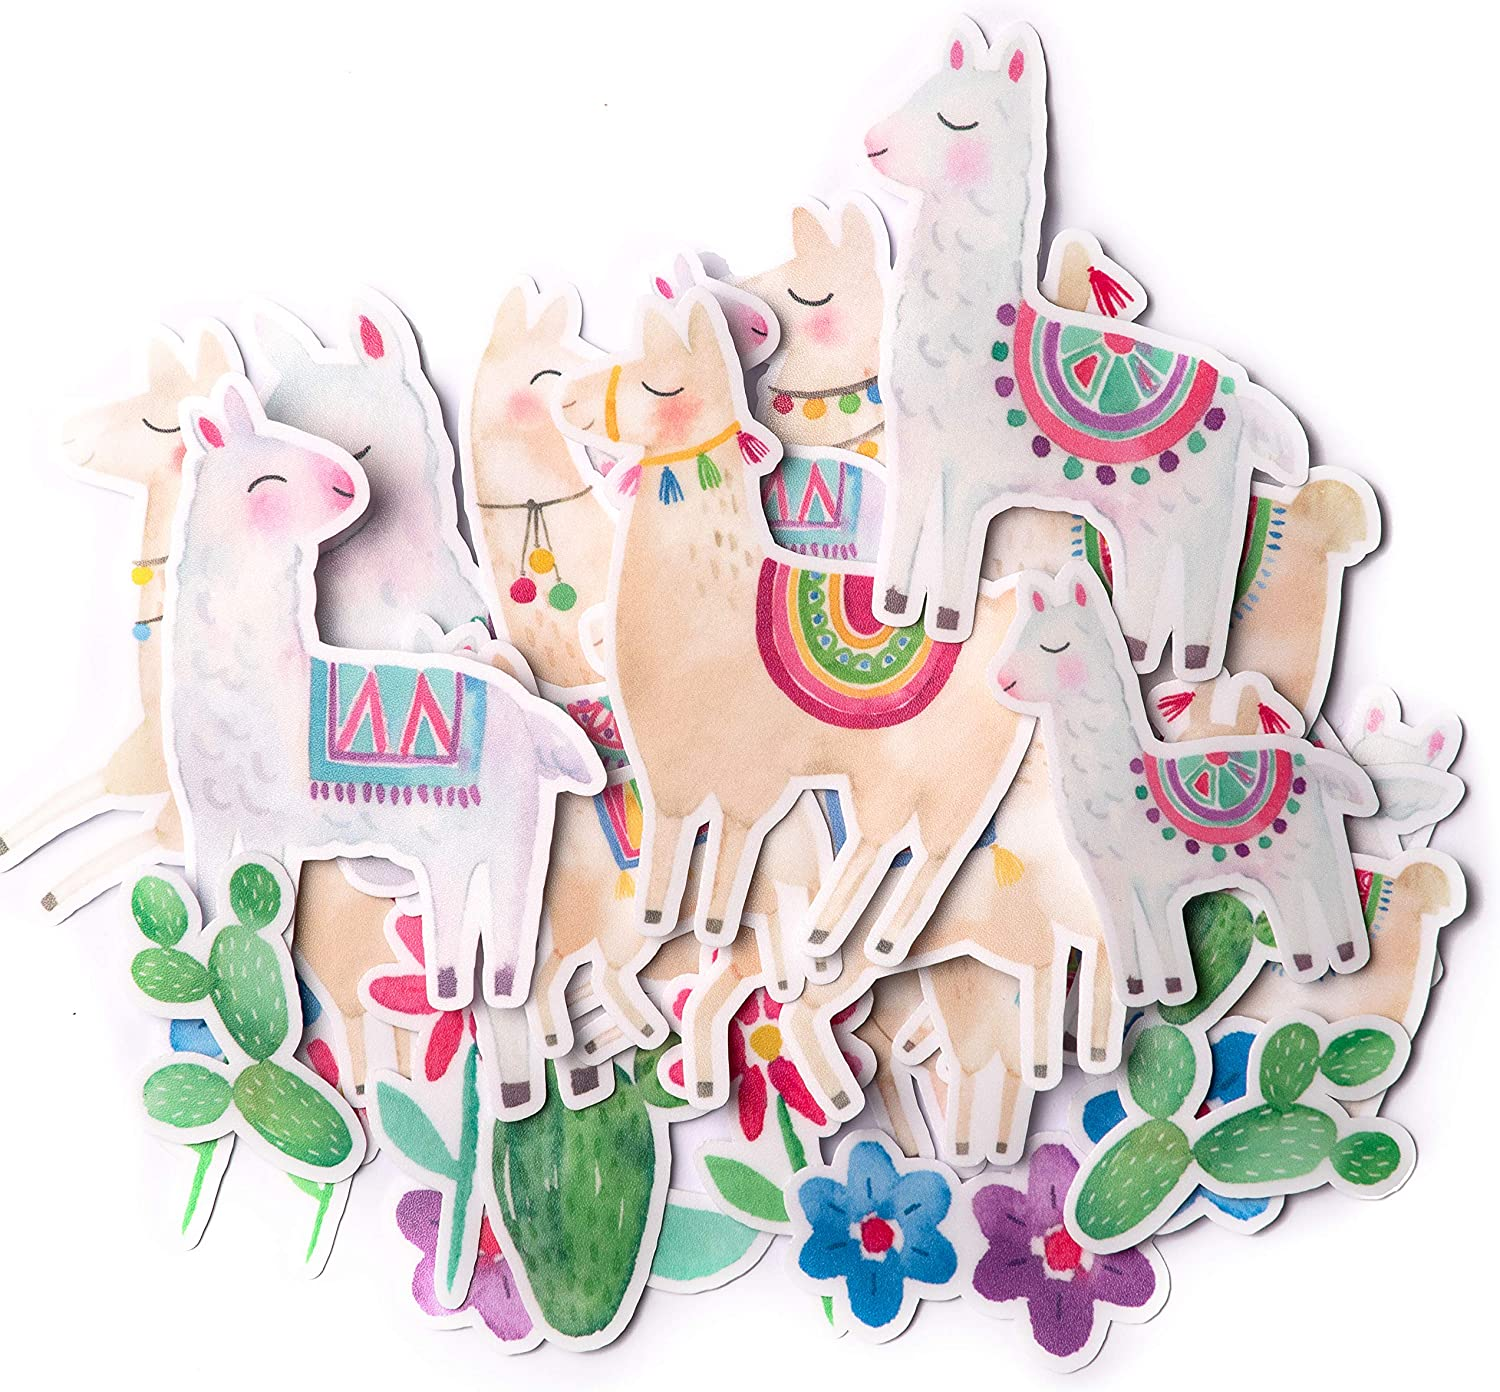 Navy Peony Cute Llama Stickers (31 Pieces) | Cool Farm Animal Stickers for Kids | Waterproof Easter Stickers for Water Bottles and Laptops | Aesthetic Sticker Pack for Scrapbooking and Journals